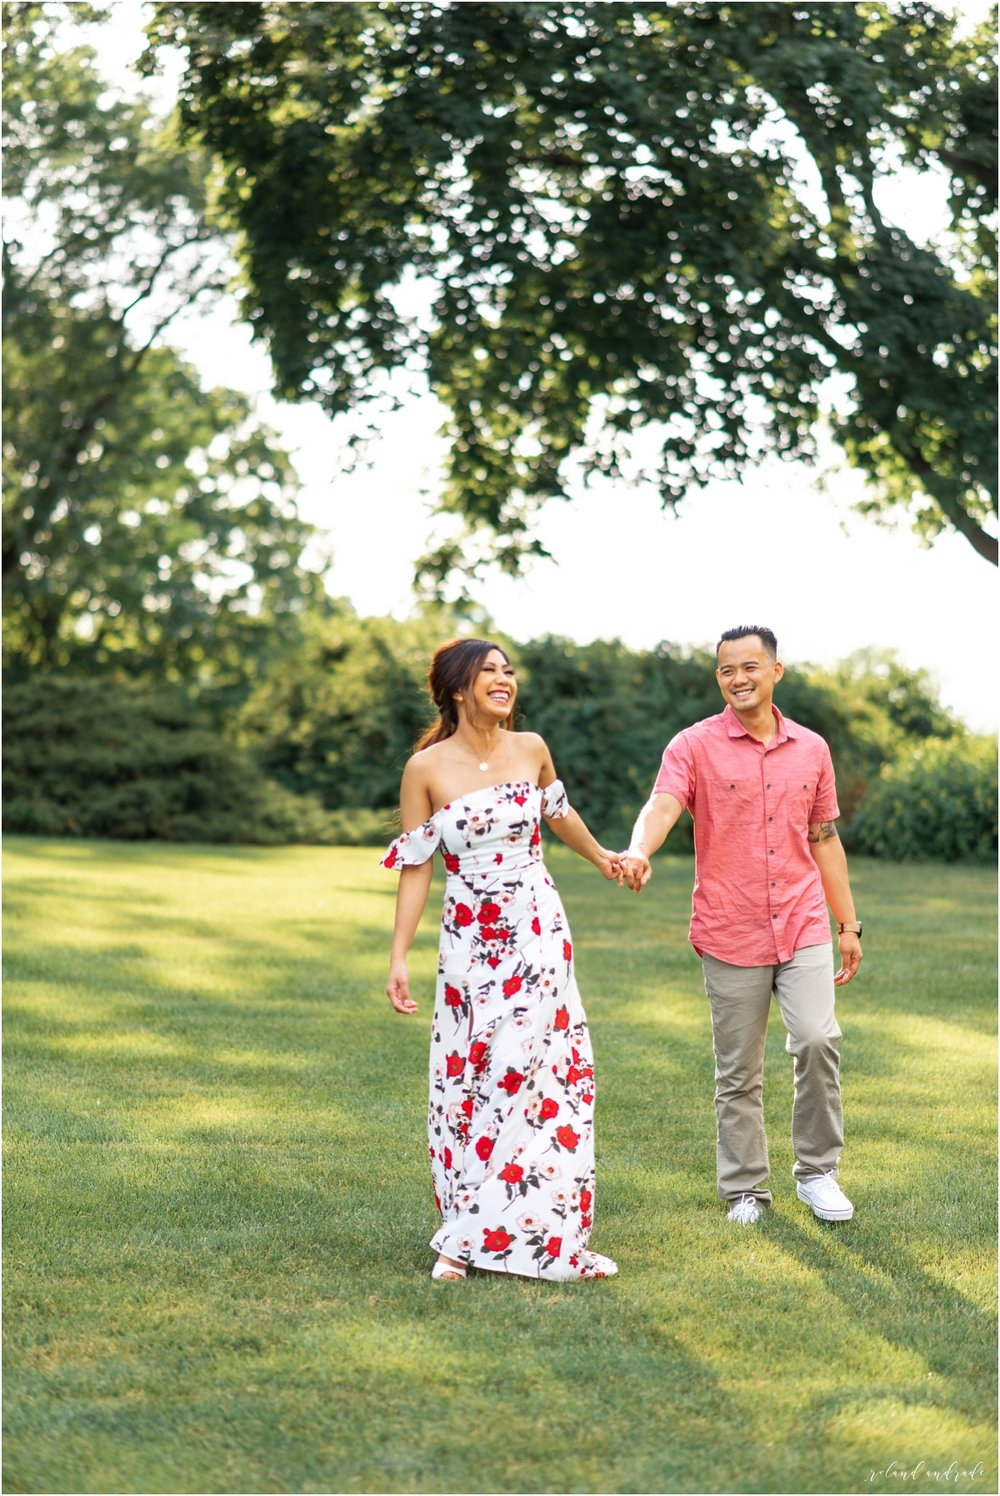 Cantigny Park Engagement Session, Wheaton Illinois Engagement Session, Chicago Wedding Photographer, Naperville Wedding Photographer, Aurora Wedding Photographer_0014.jpg